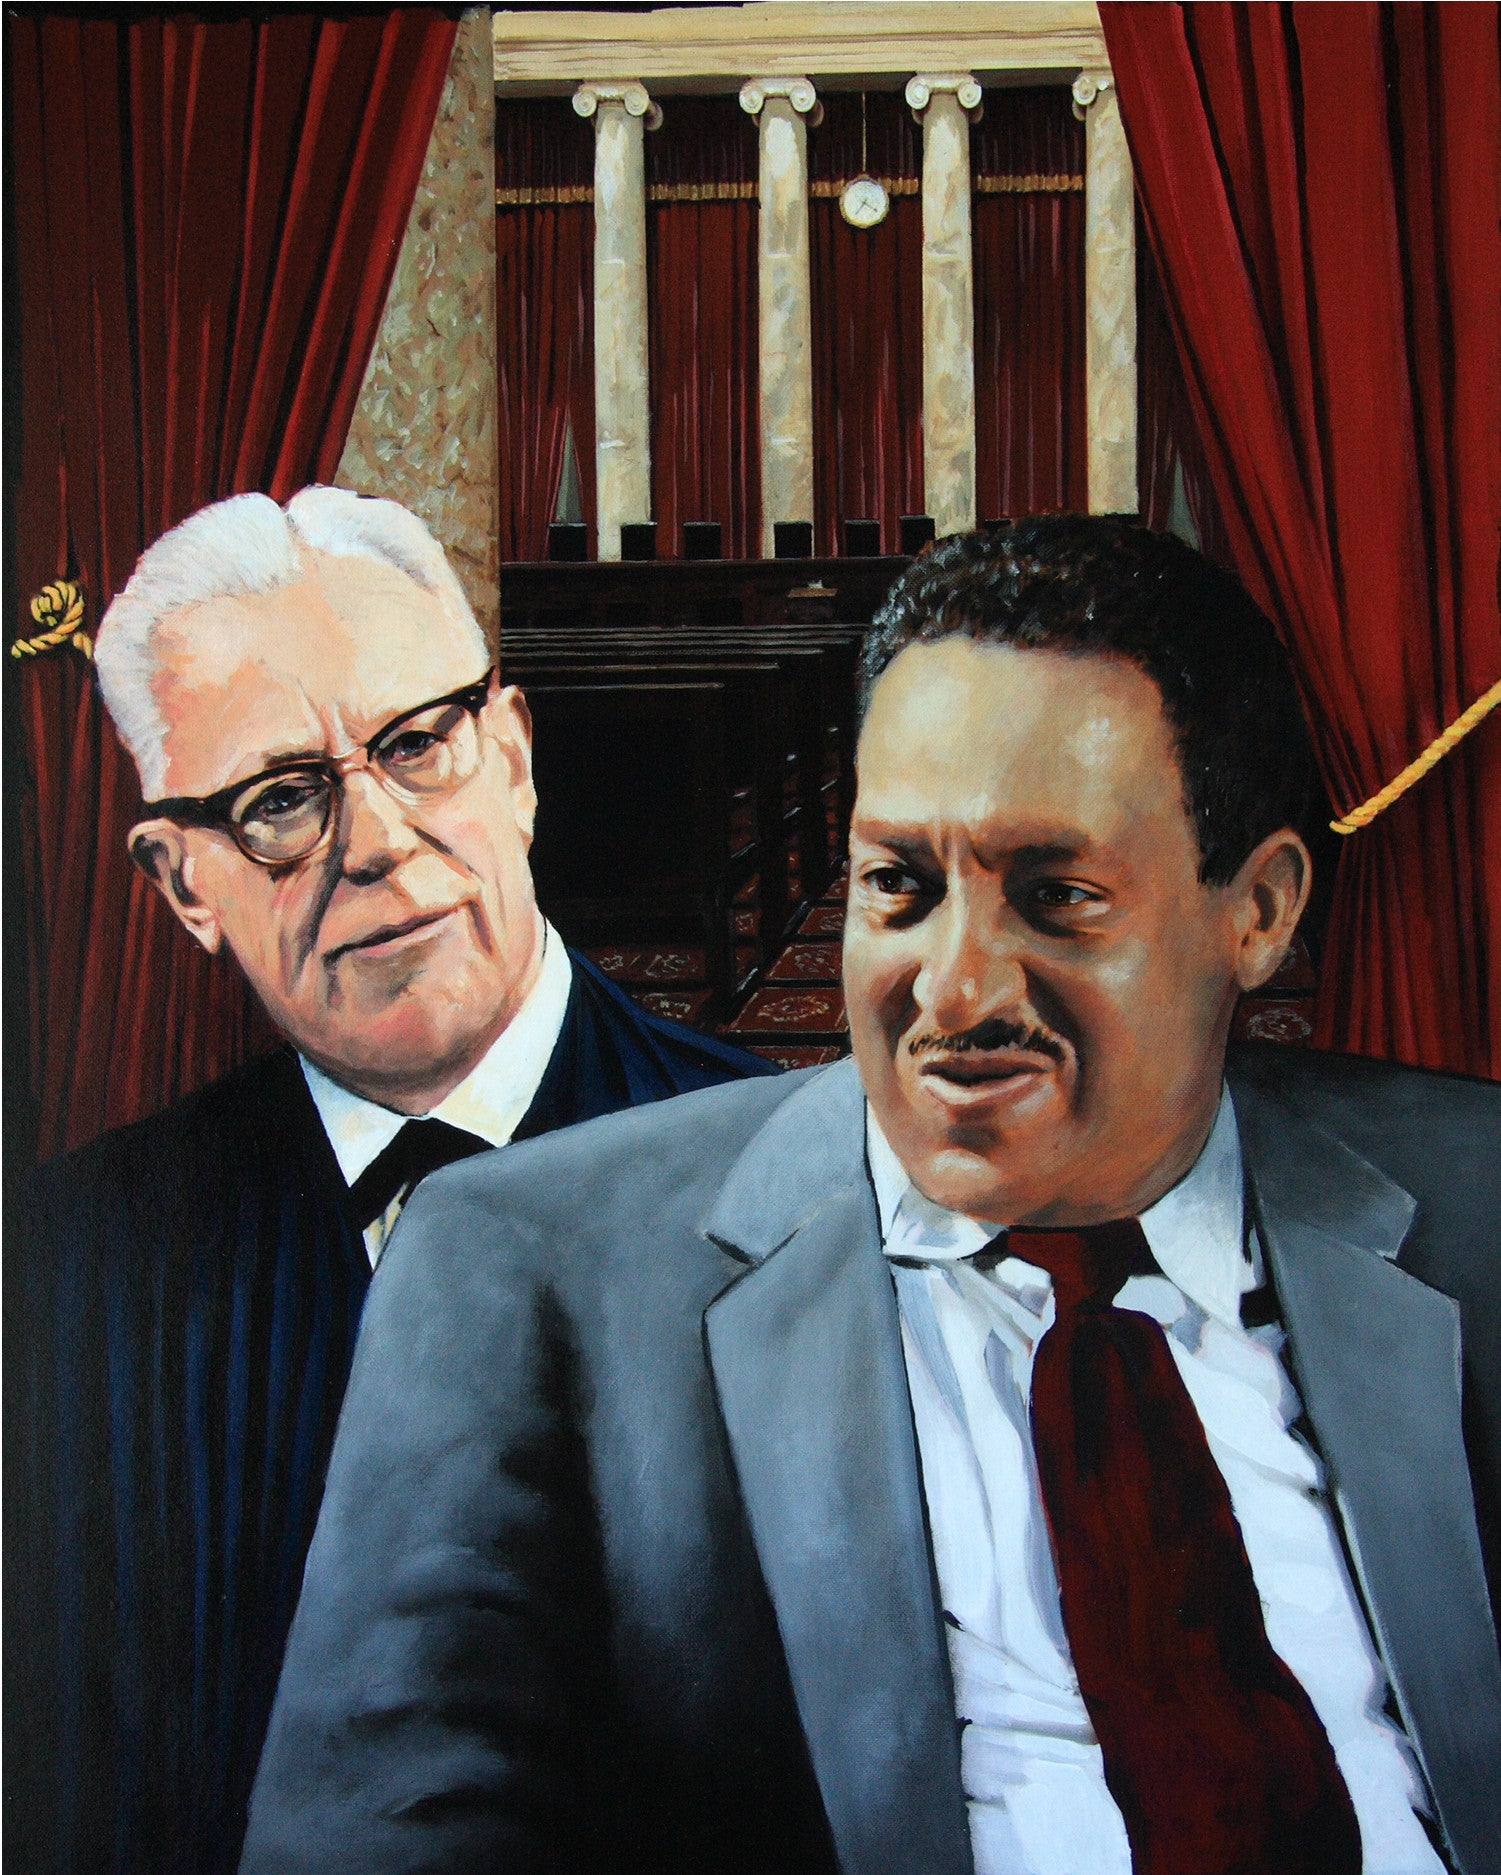 Thurgood Marshall with Earl Warren by artist Trevor Goring